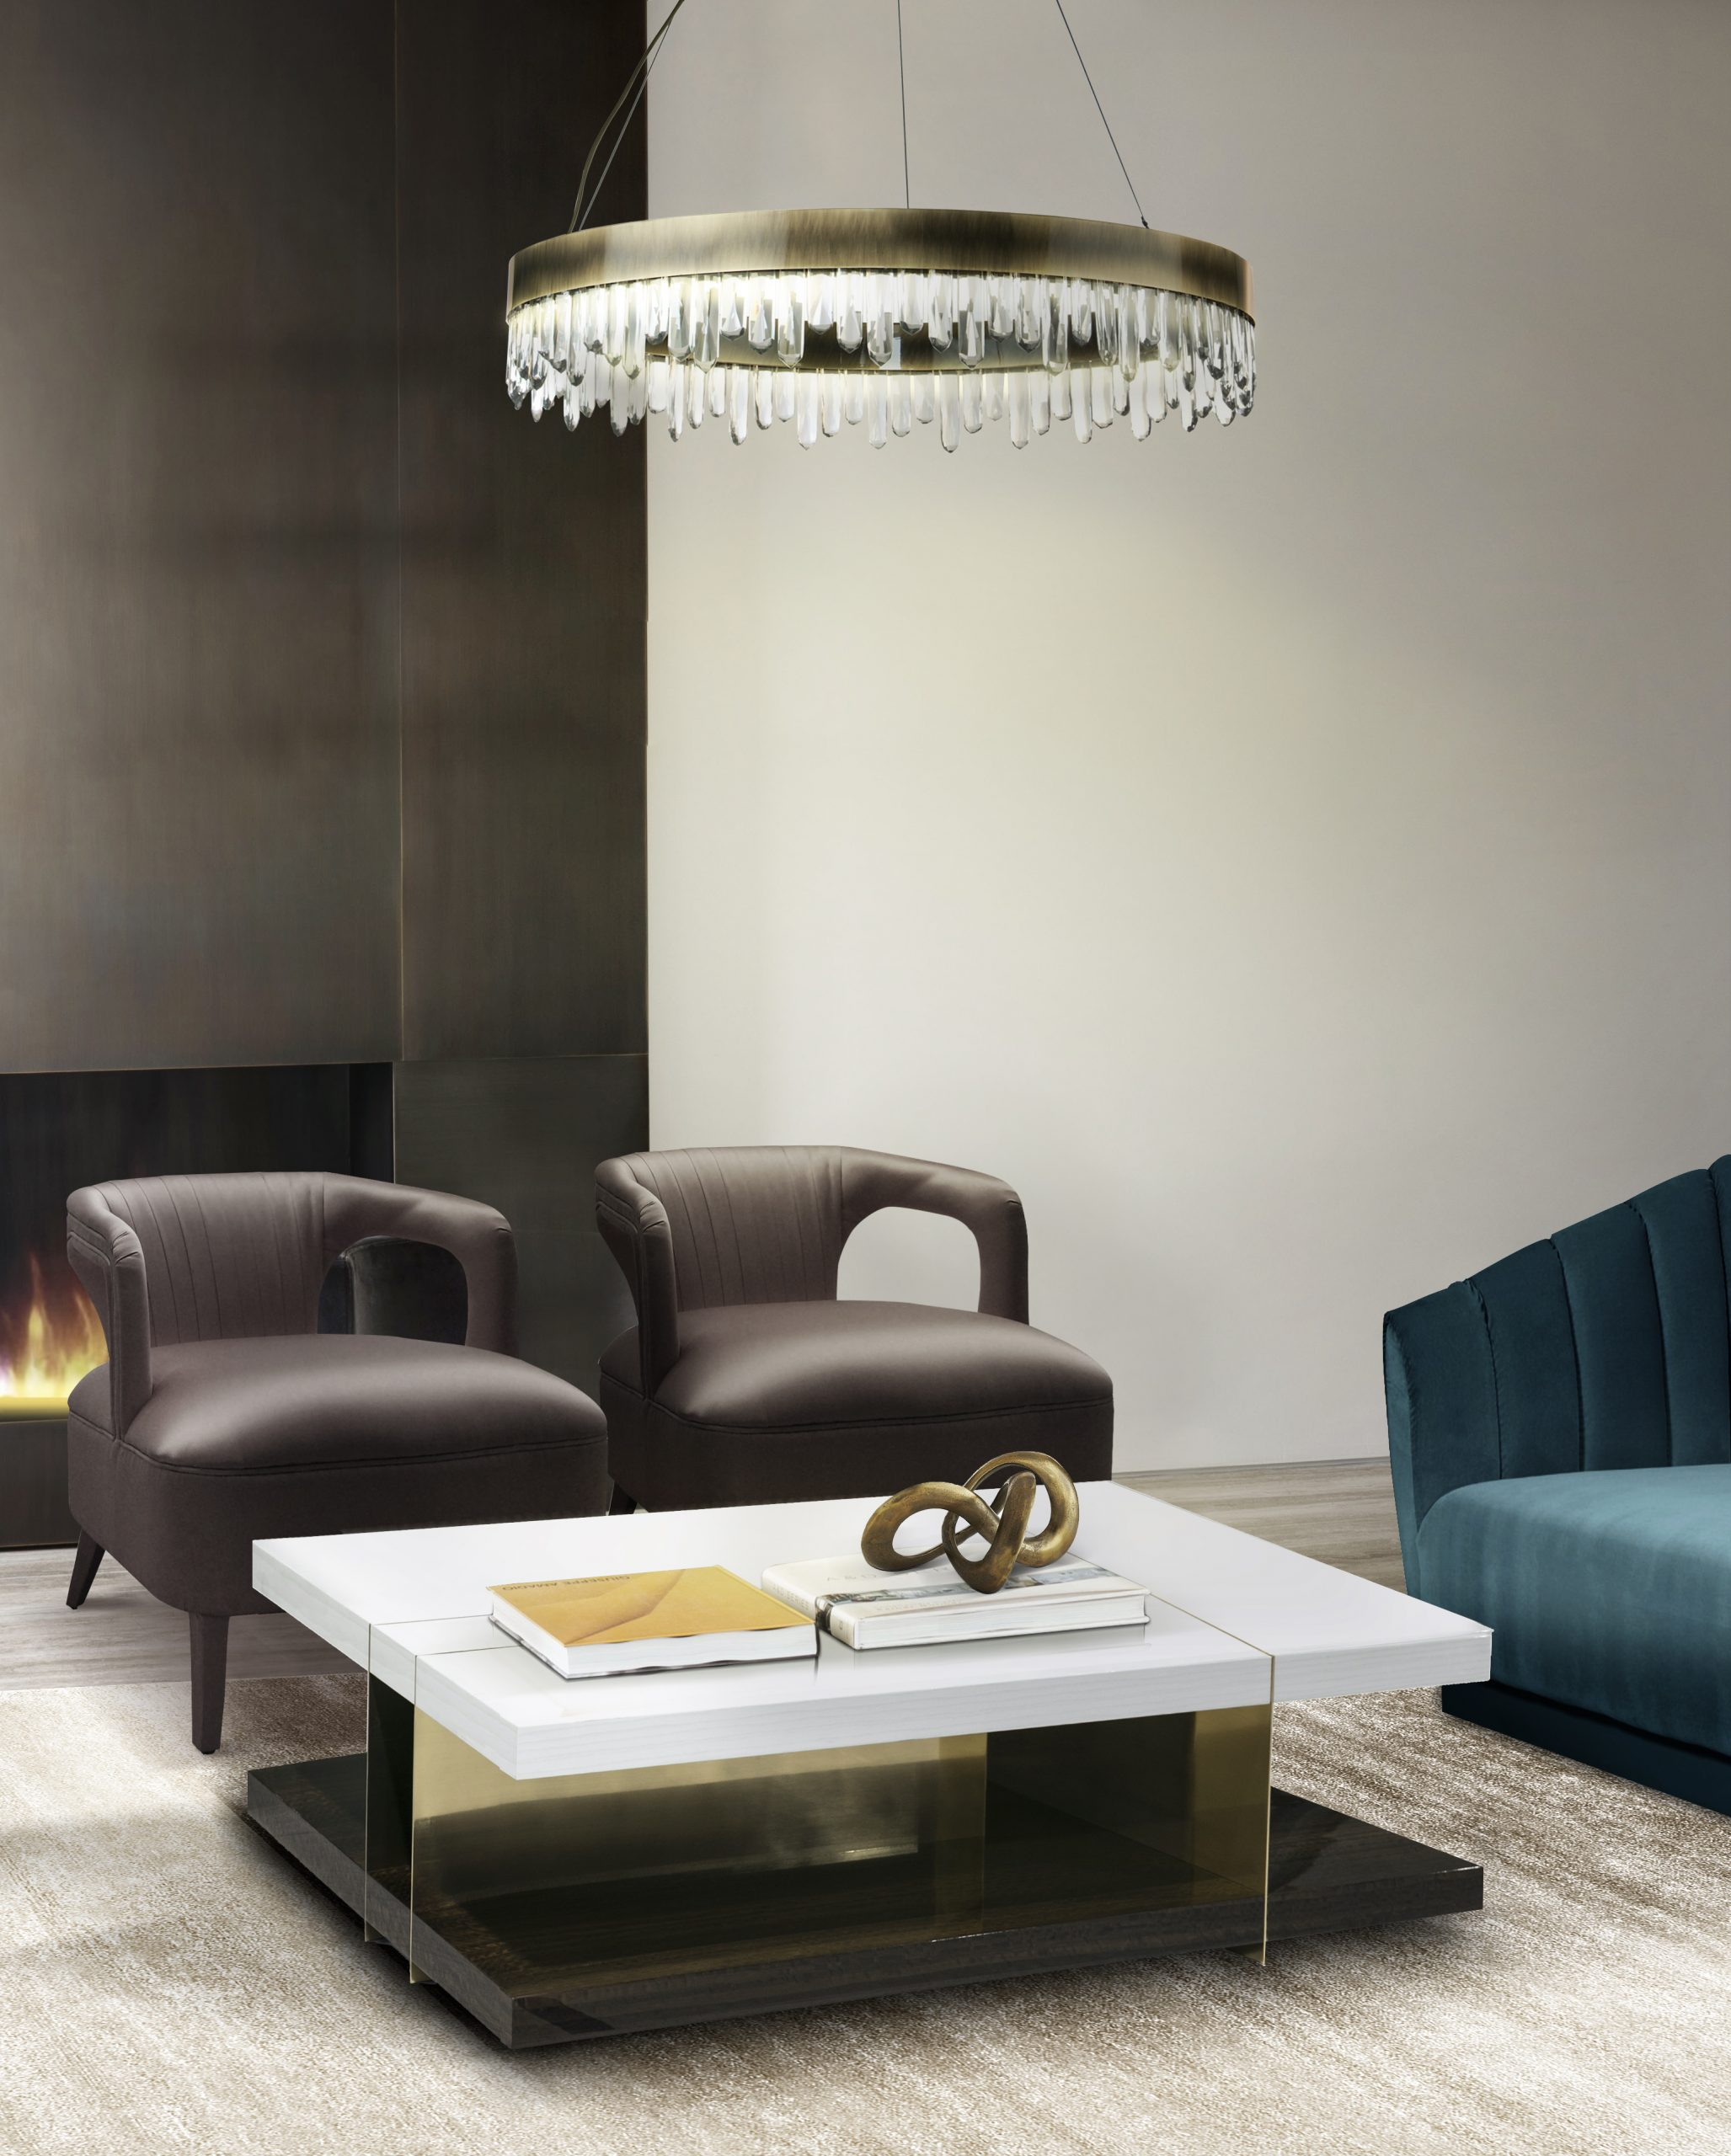 Accent Chairs: Tips On How To Choose A Chair To Make a Statement